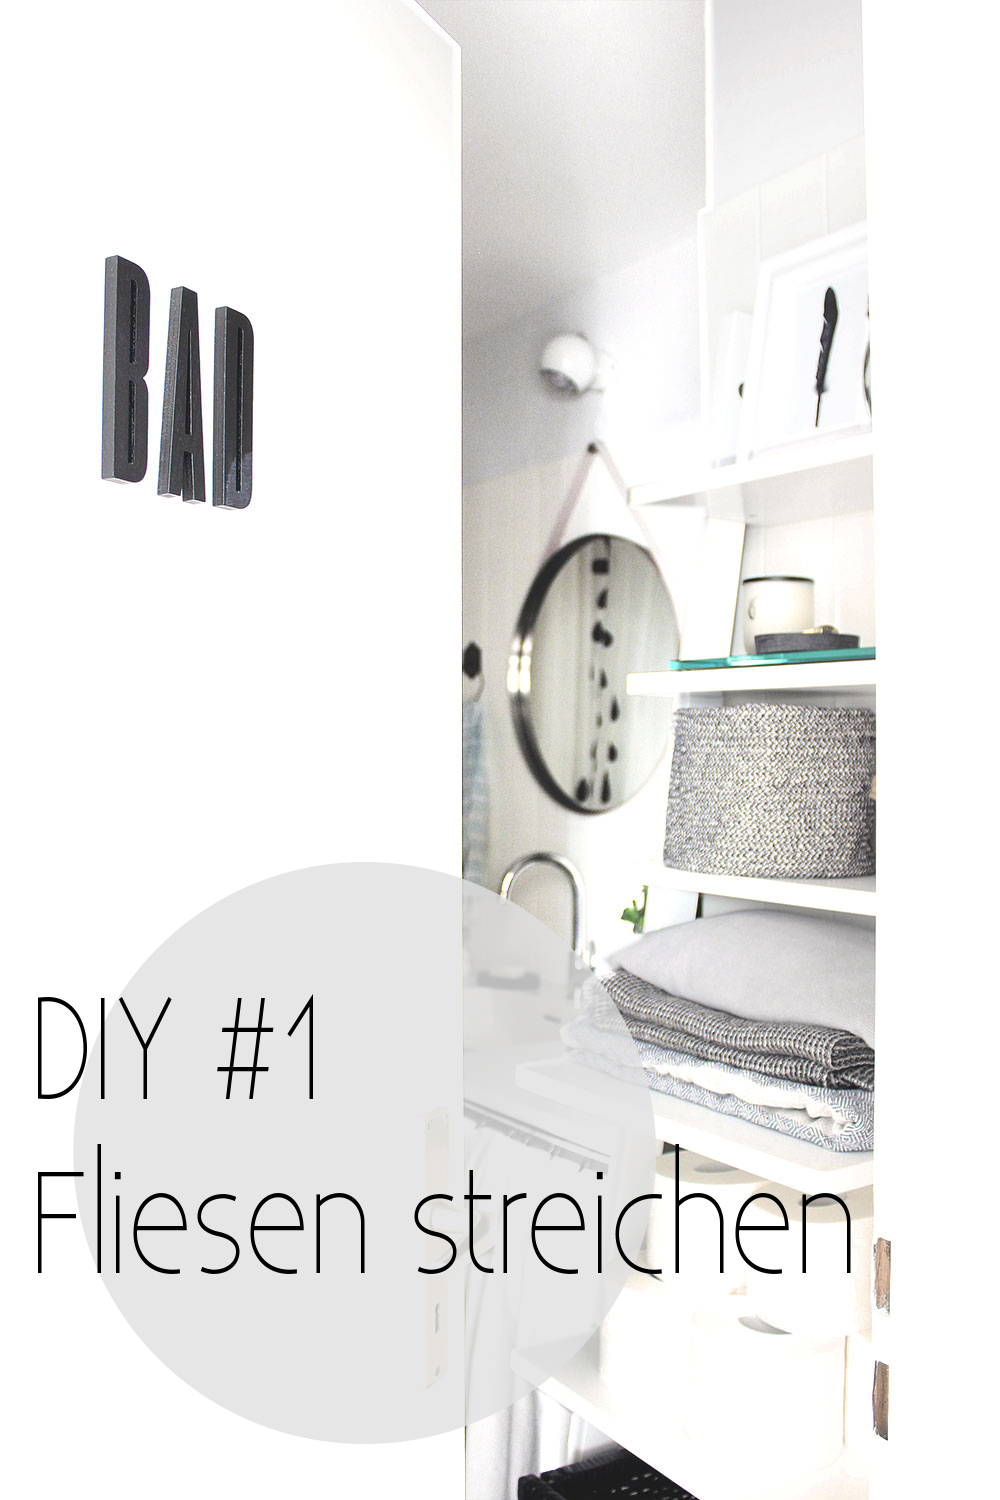 mein bad voller diys 1 fliesen streichen oh what a room. Black Bedroom Furniture Sets. Home Design Ideas